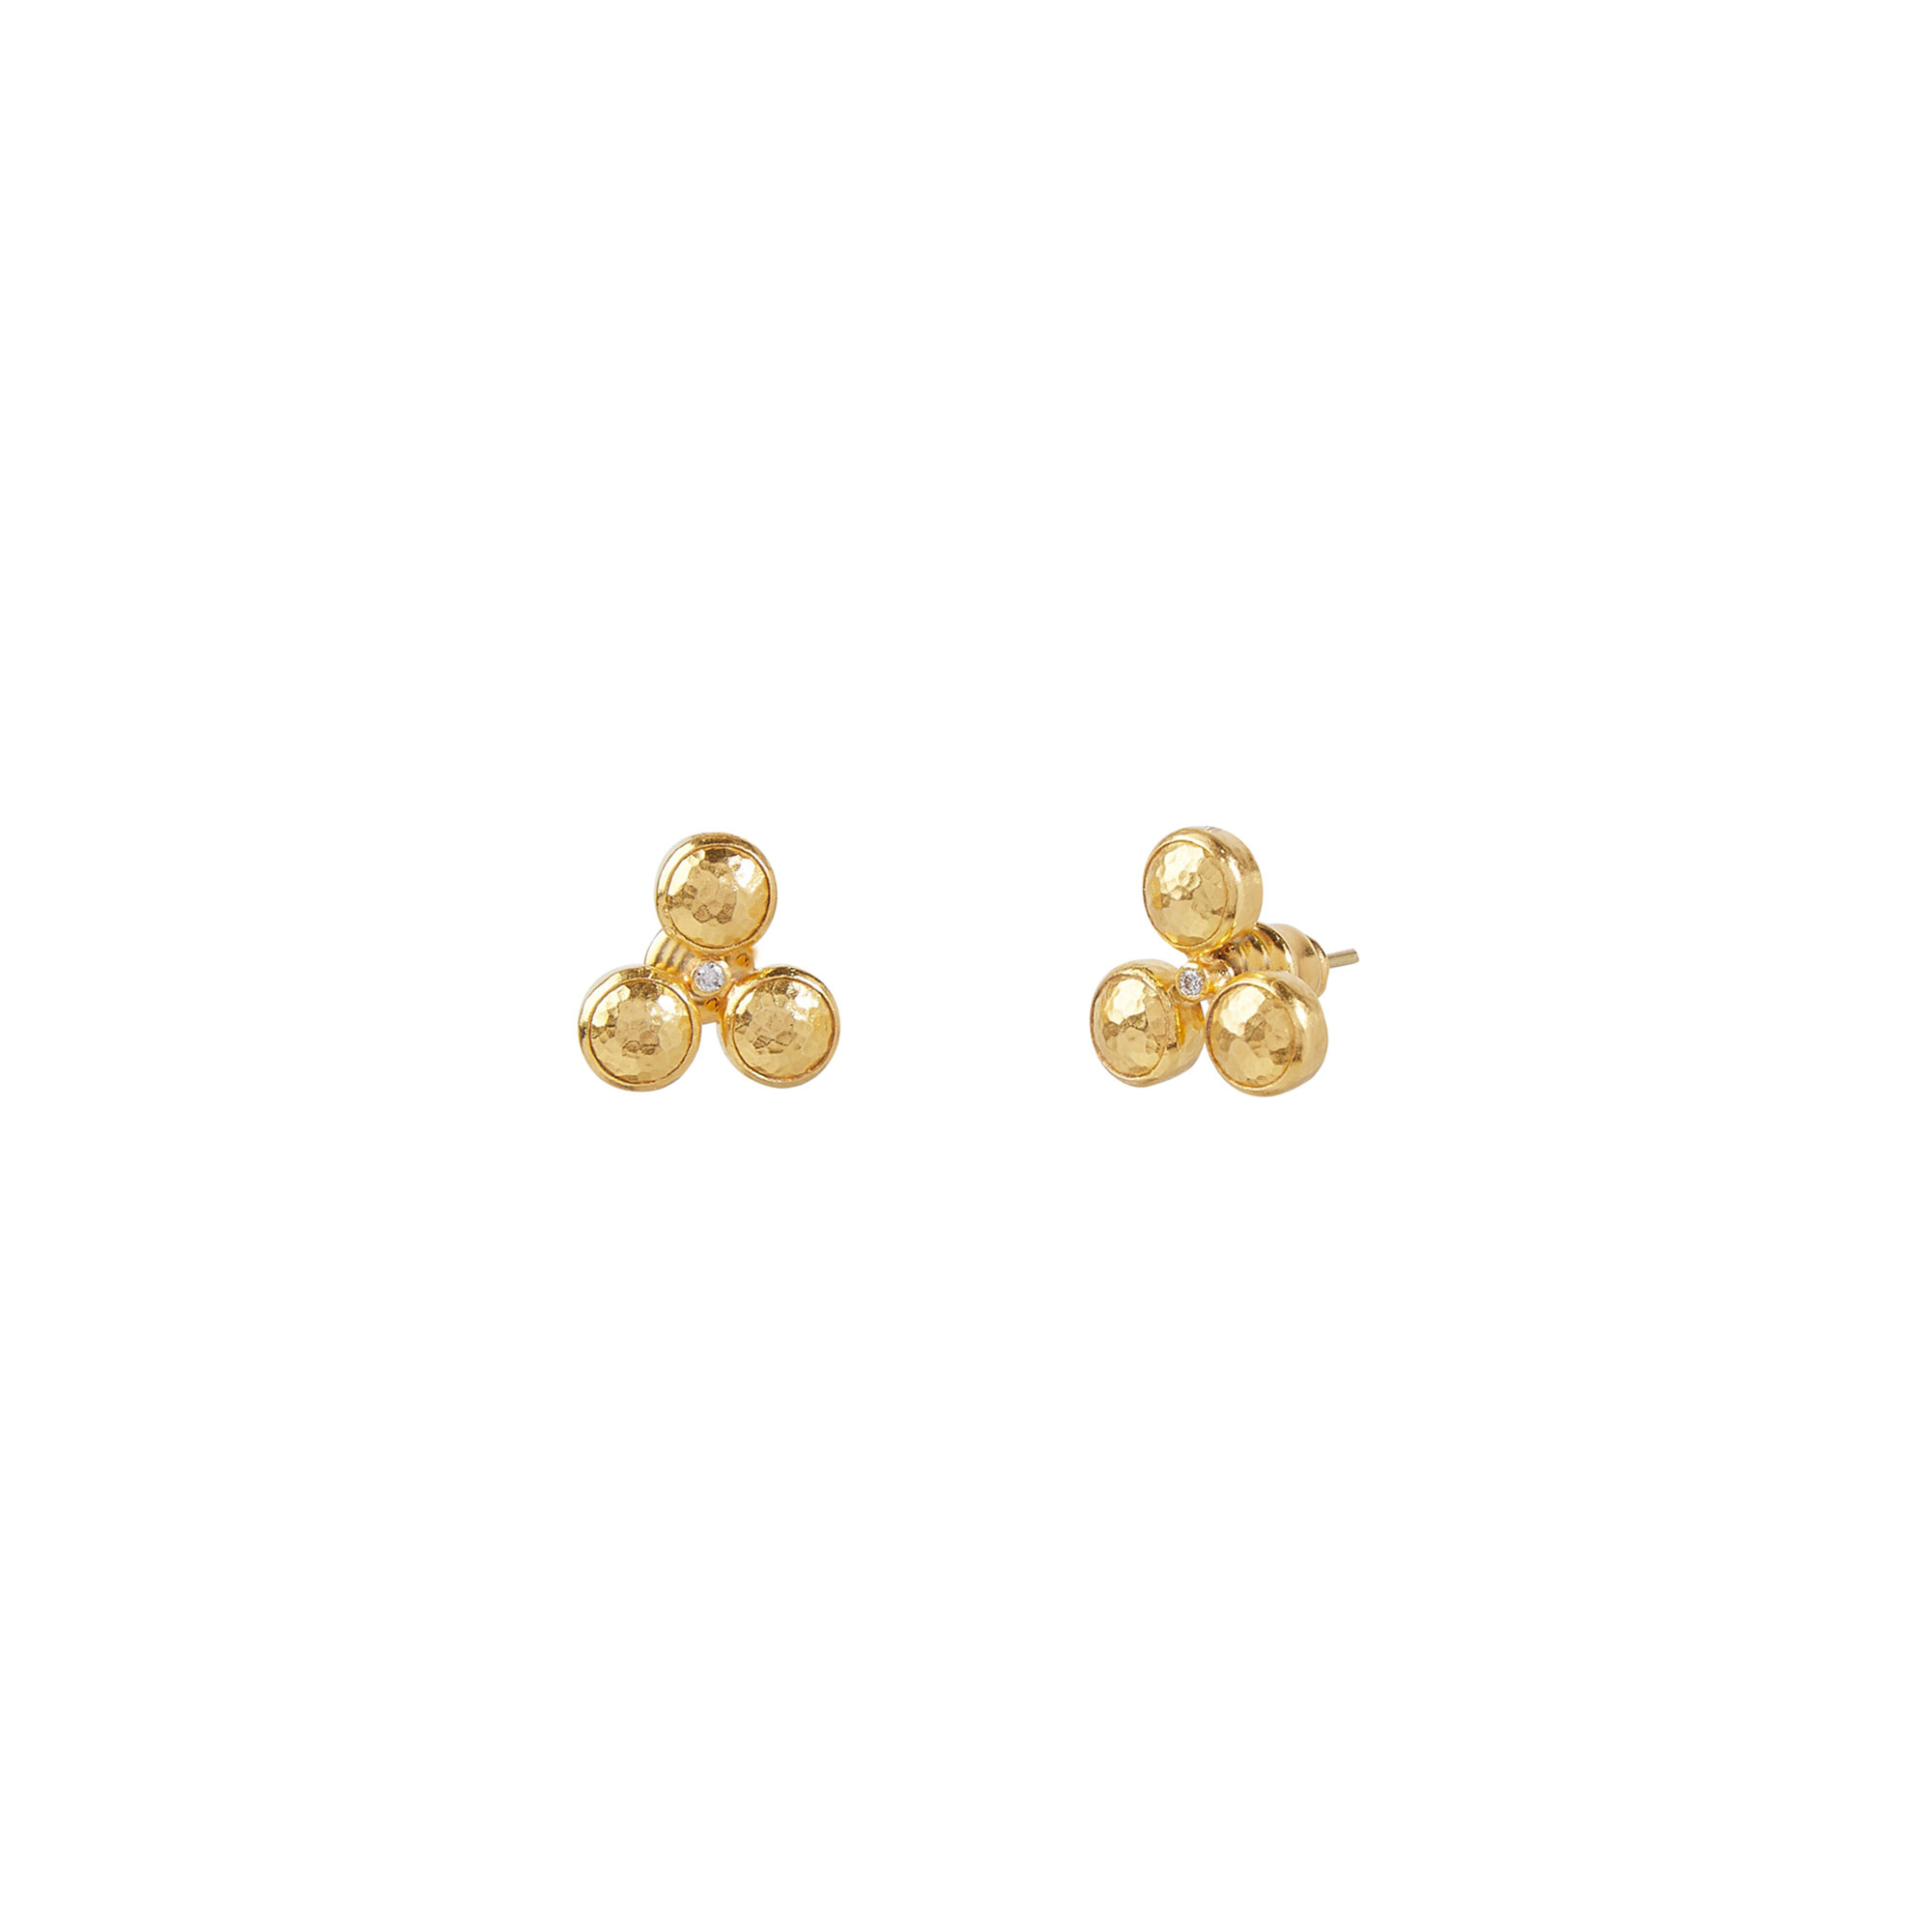 Gurhan 24K Yellow Gold 0.036cts  Diamond Gold Earrings with Stones GUE-YG-DIOS-2534